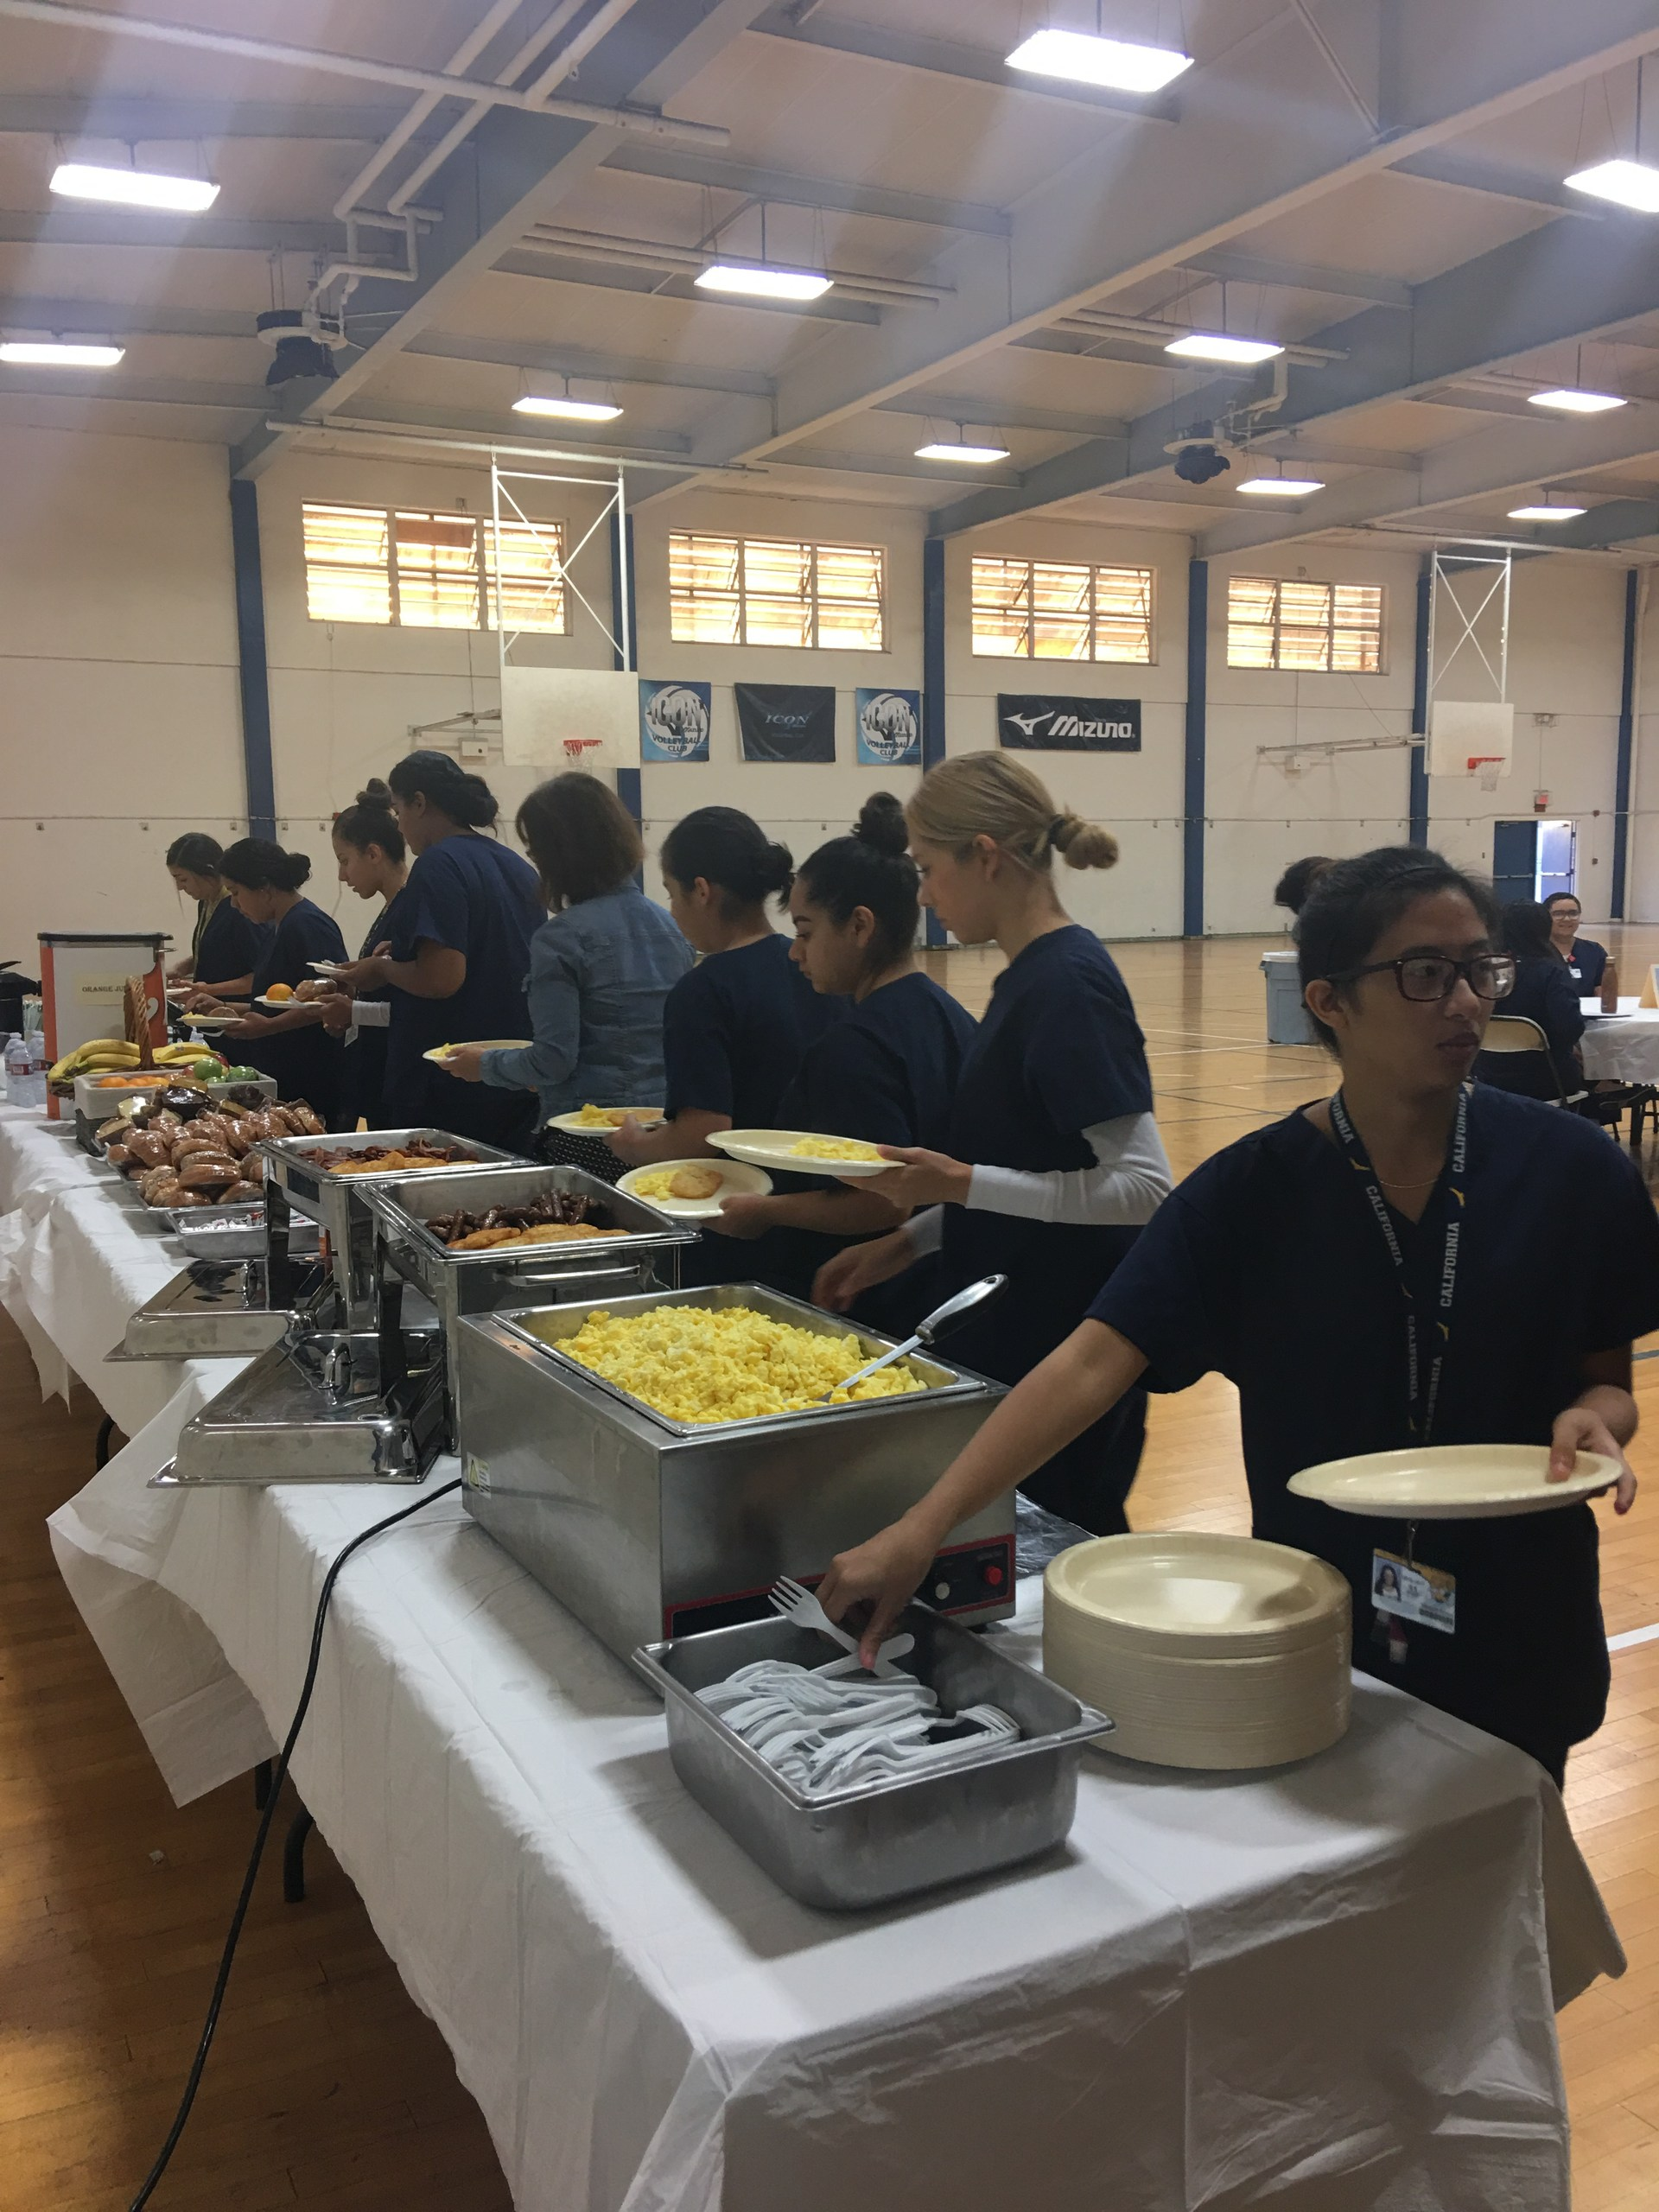 Health Academy students being served breakfast